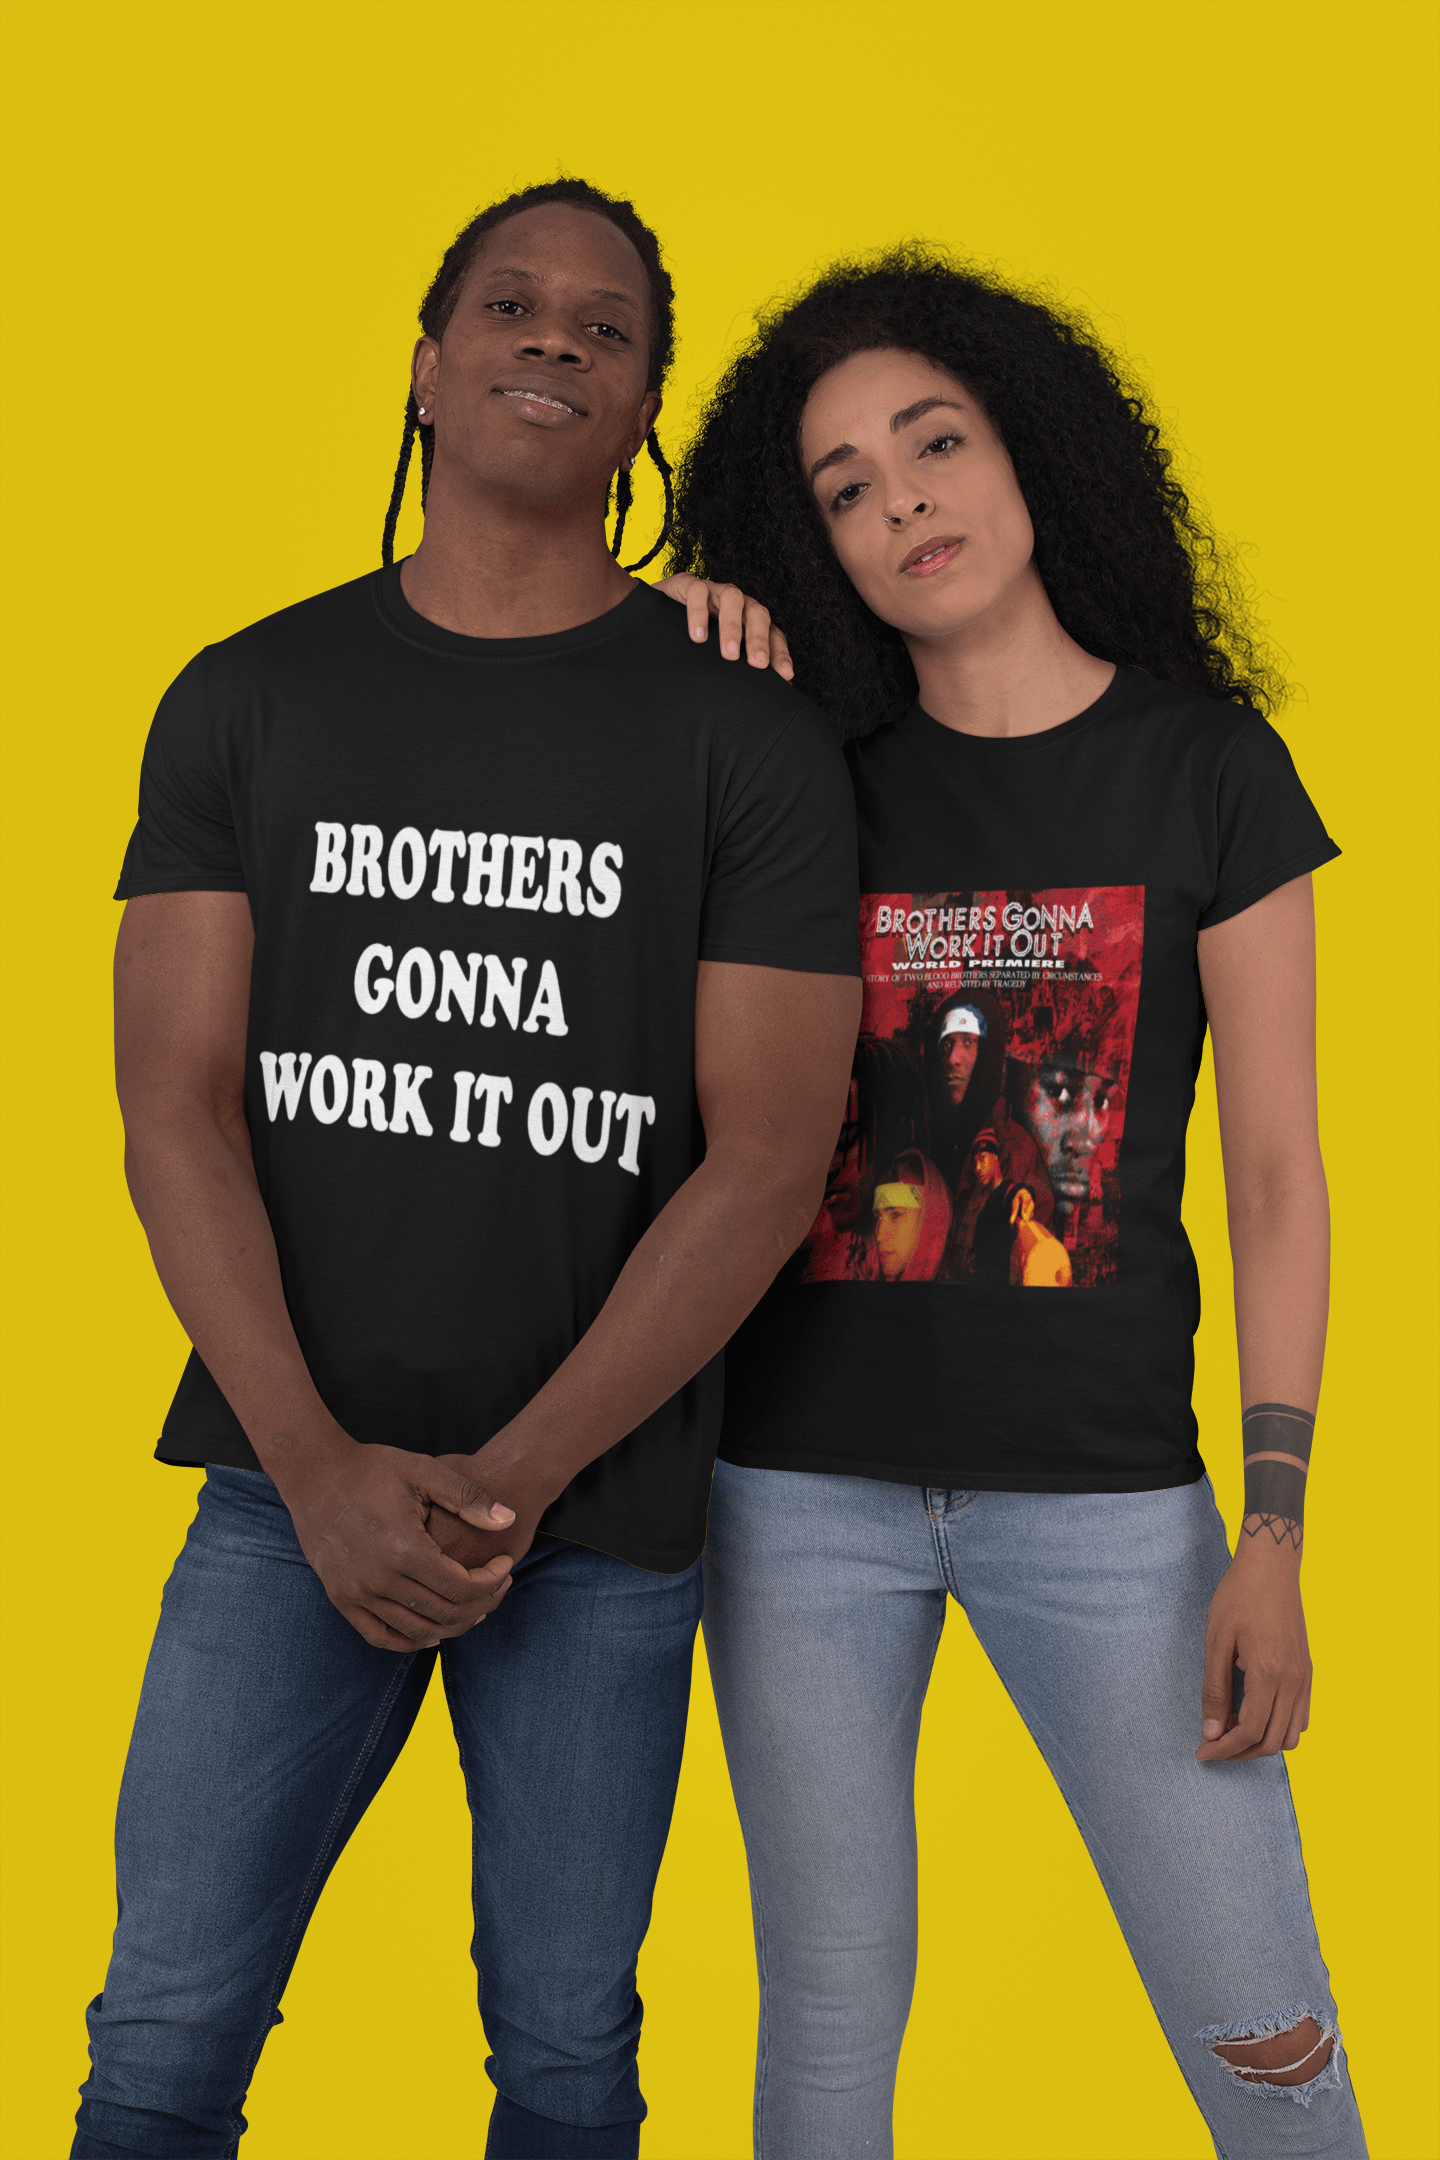 t shirt mockup of a man and a woman posing against a plain color backdrop 30760